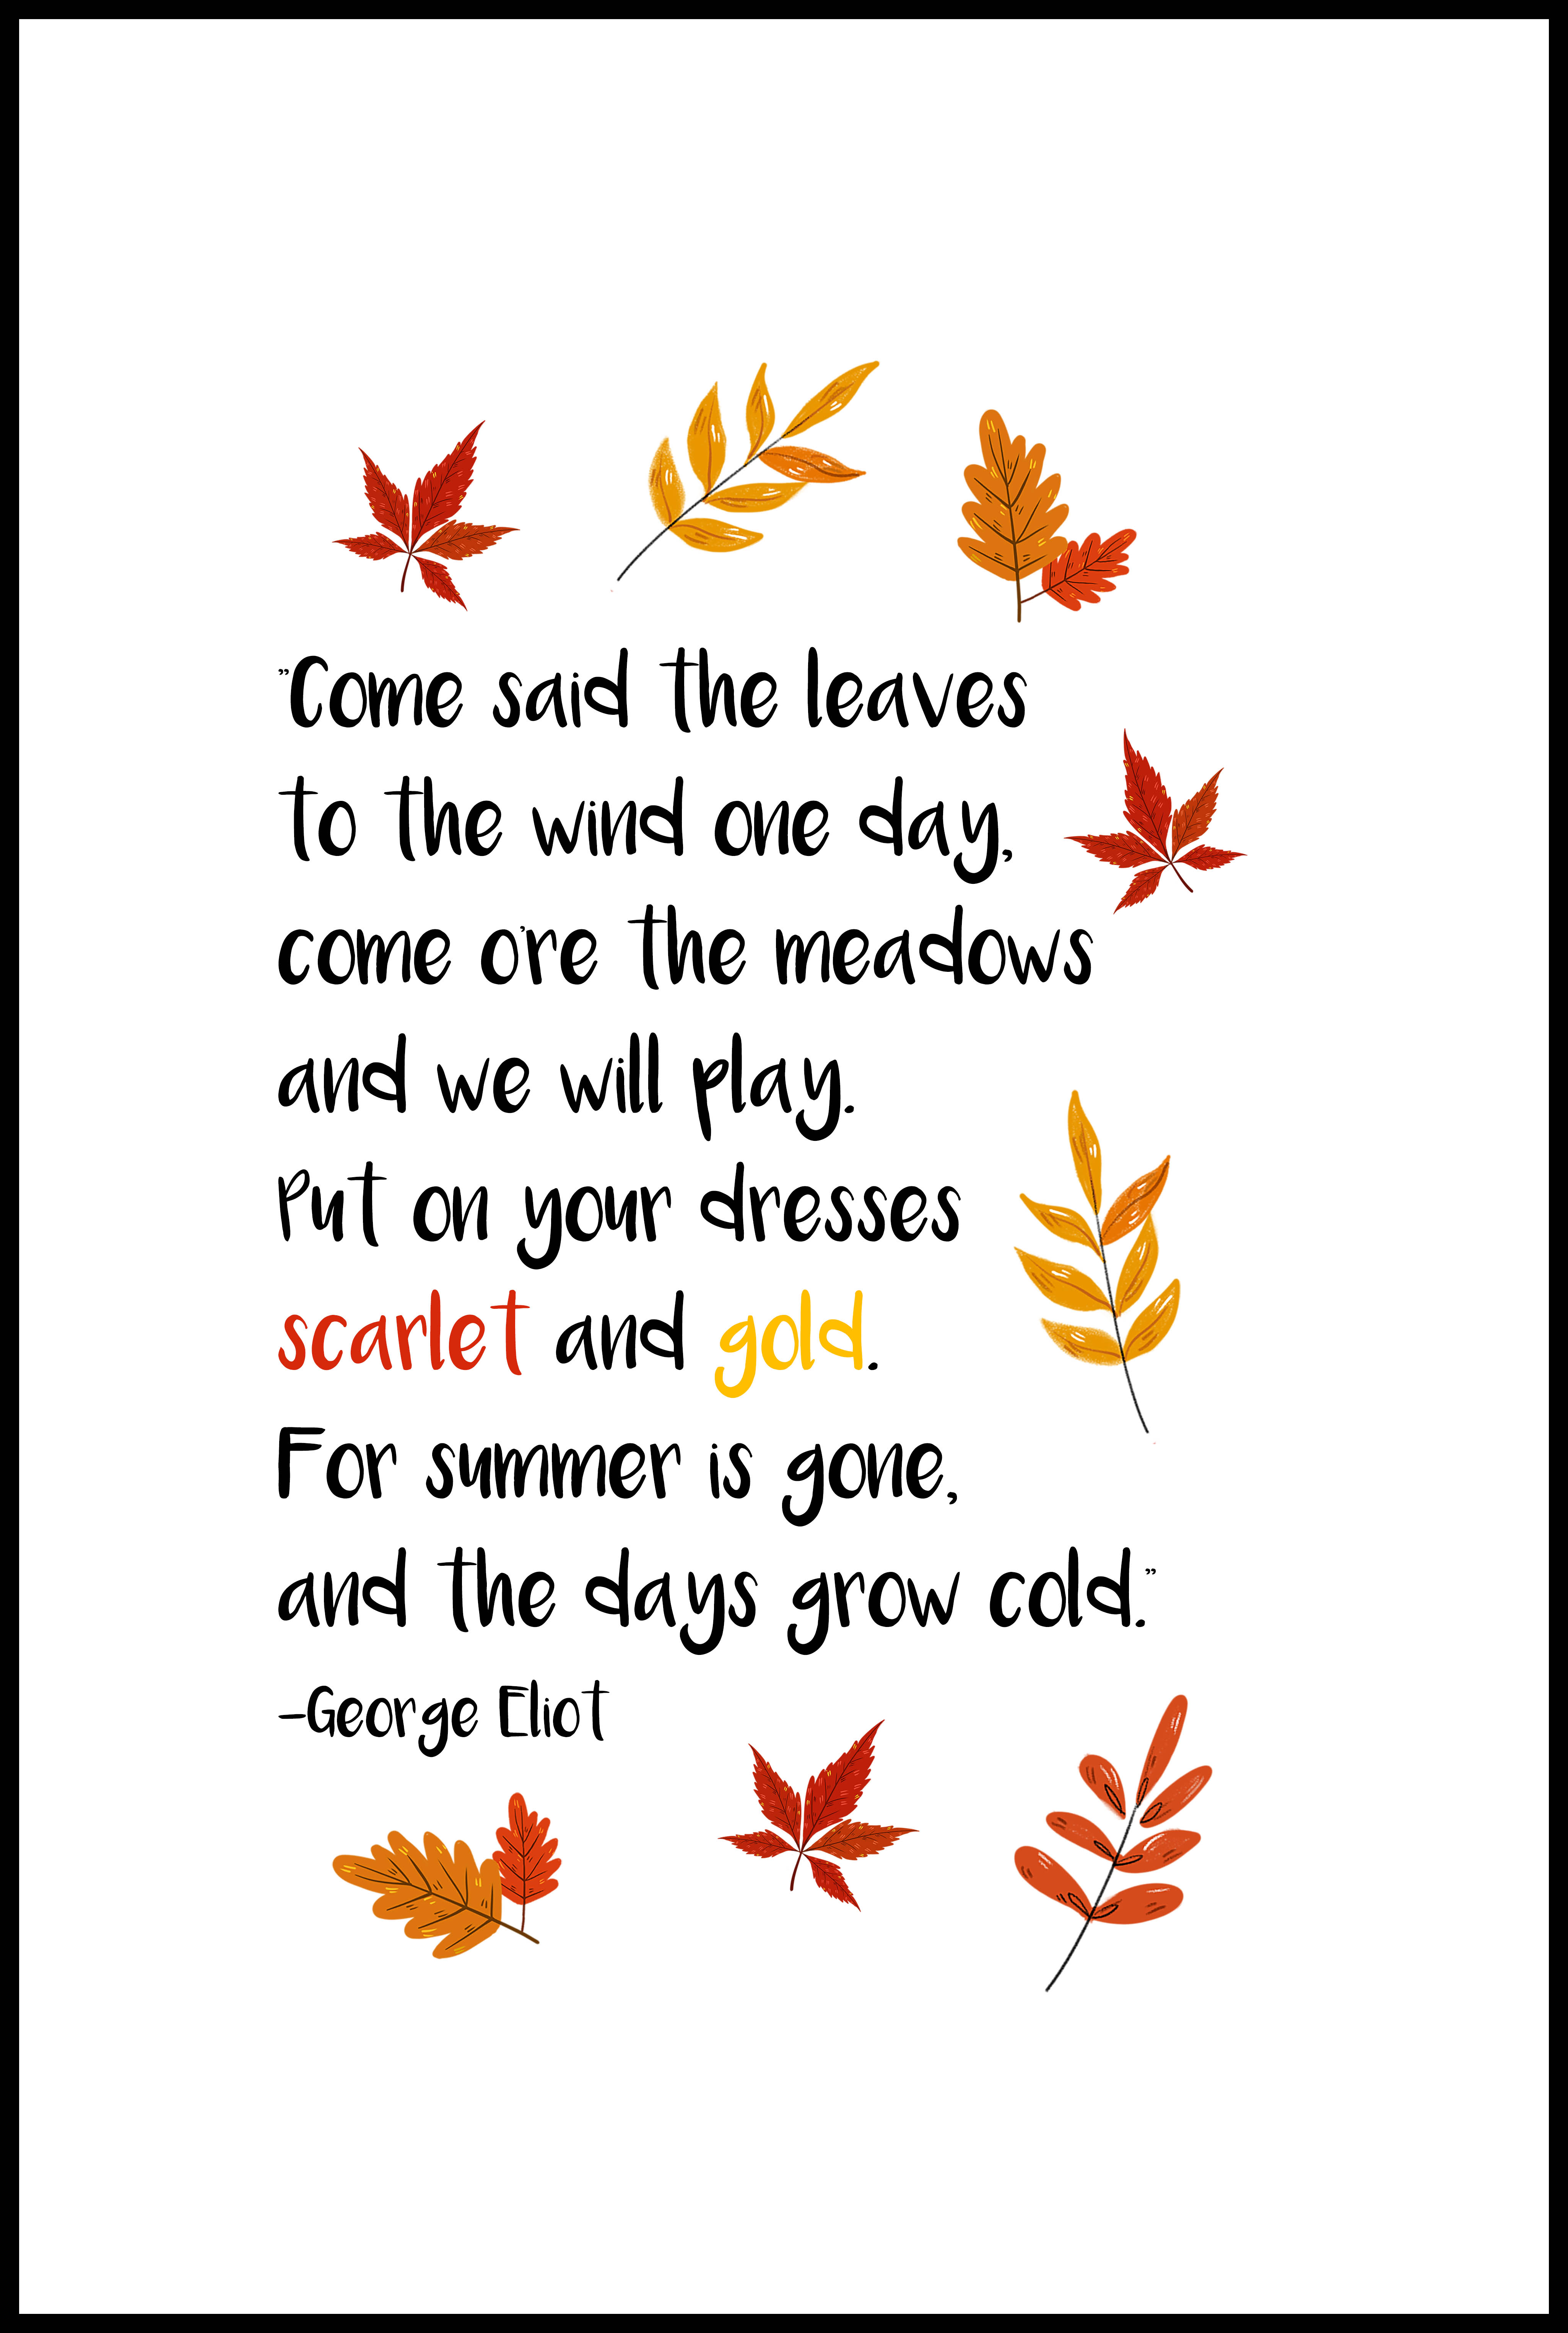 George Eliot Scarlet and Gold Fall Quote